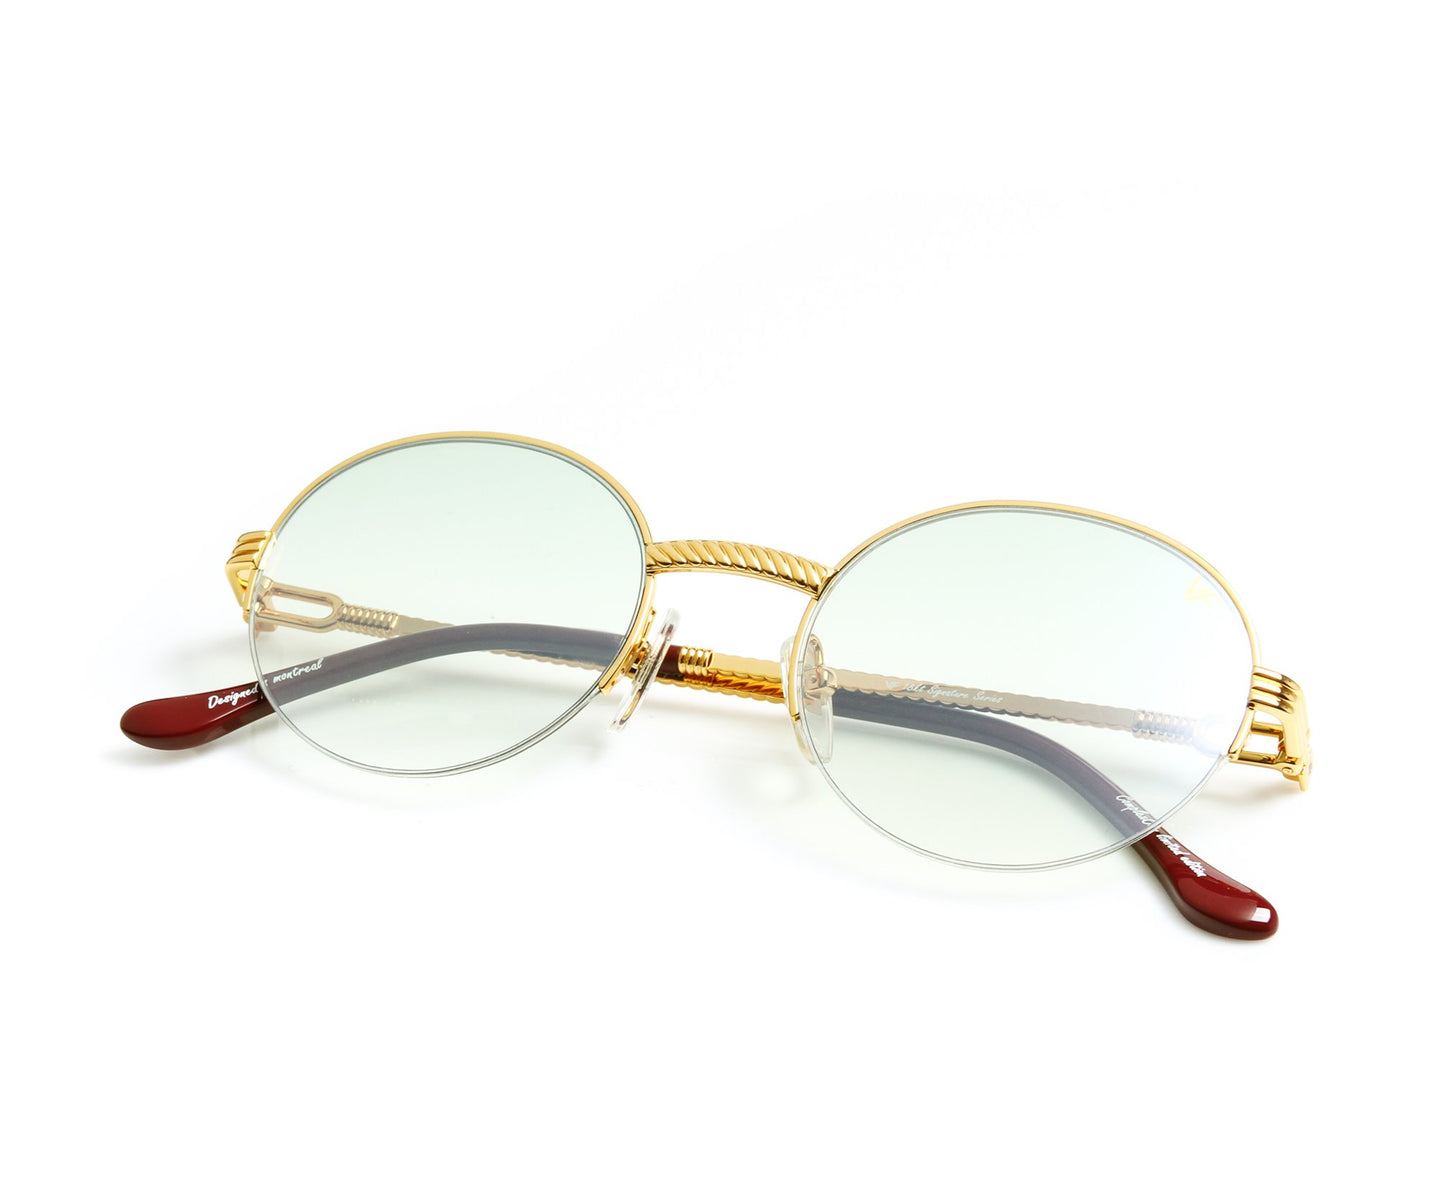 VF 508 Half Rim 18KT Gold (Powder Green) Thumb, VF by Vintage Frames , glasses frames, eyeglasses online, eyeglass frames, mens glasses, womens glasses, buy glasses online, designer eyeglasses, vintage sunglasses, retro sunglasses, vintage glasses, sunglass, eyeglass, glasses, lens, vintage frames company, vf